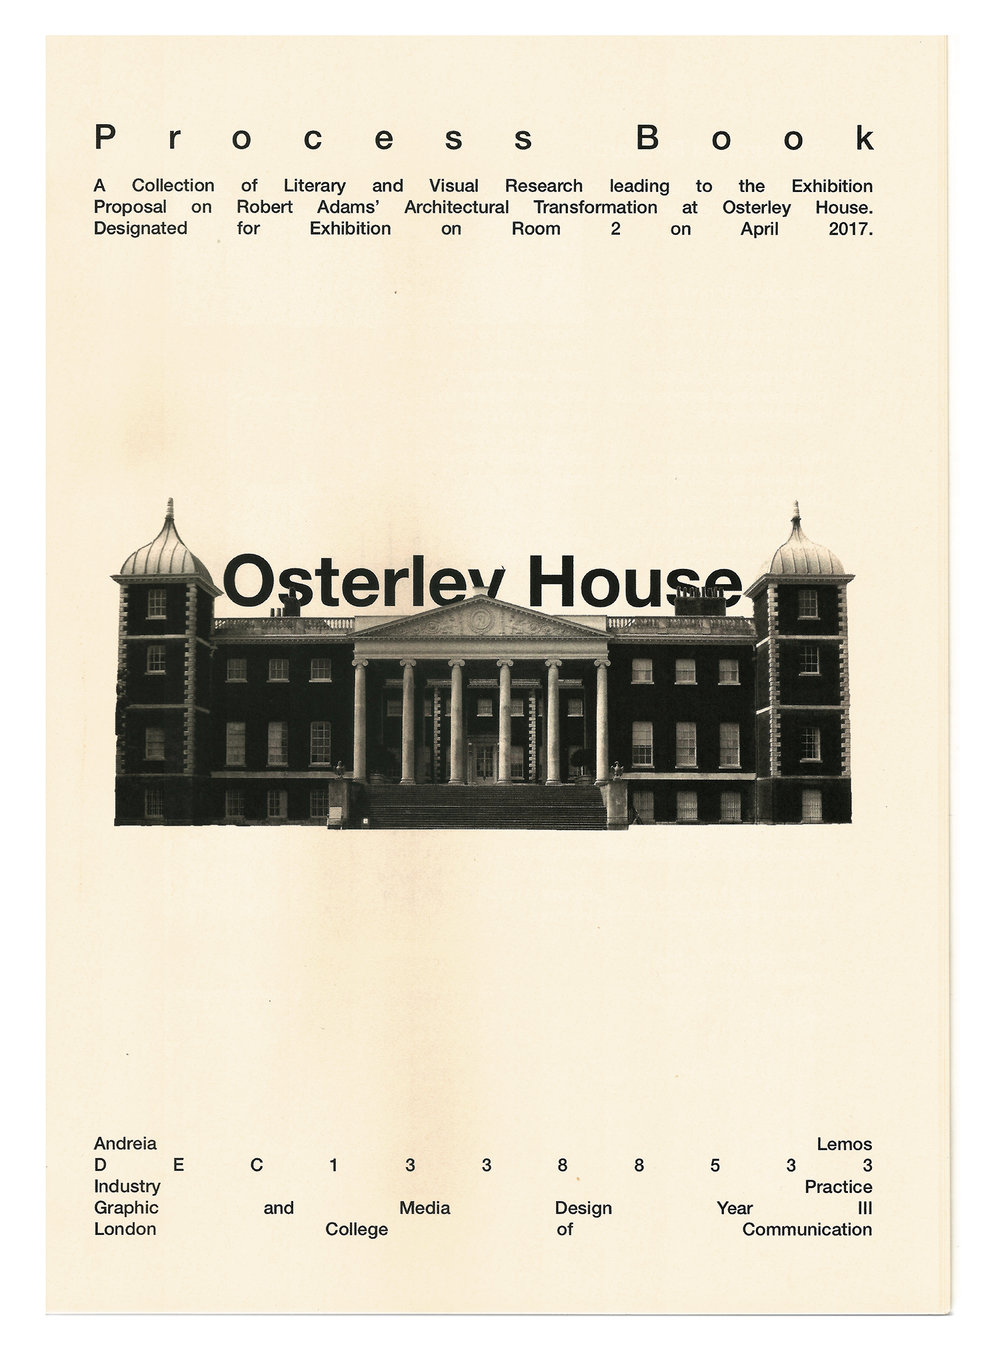 osterley publishing 3.jpg